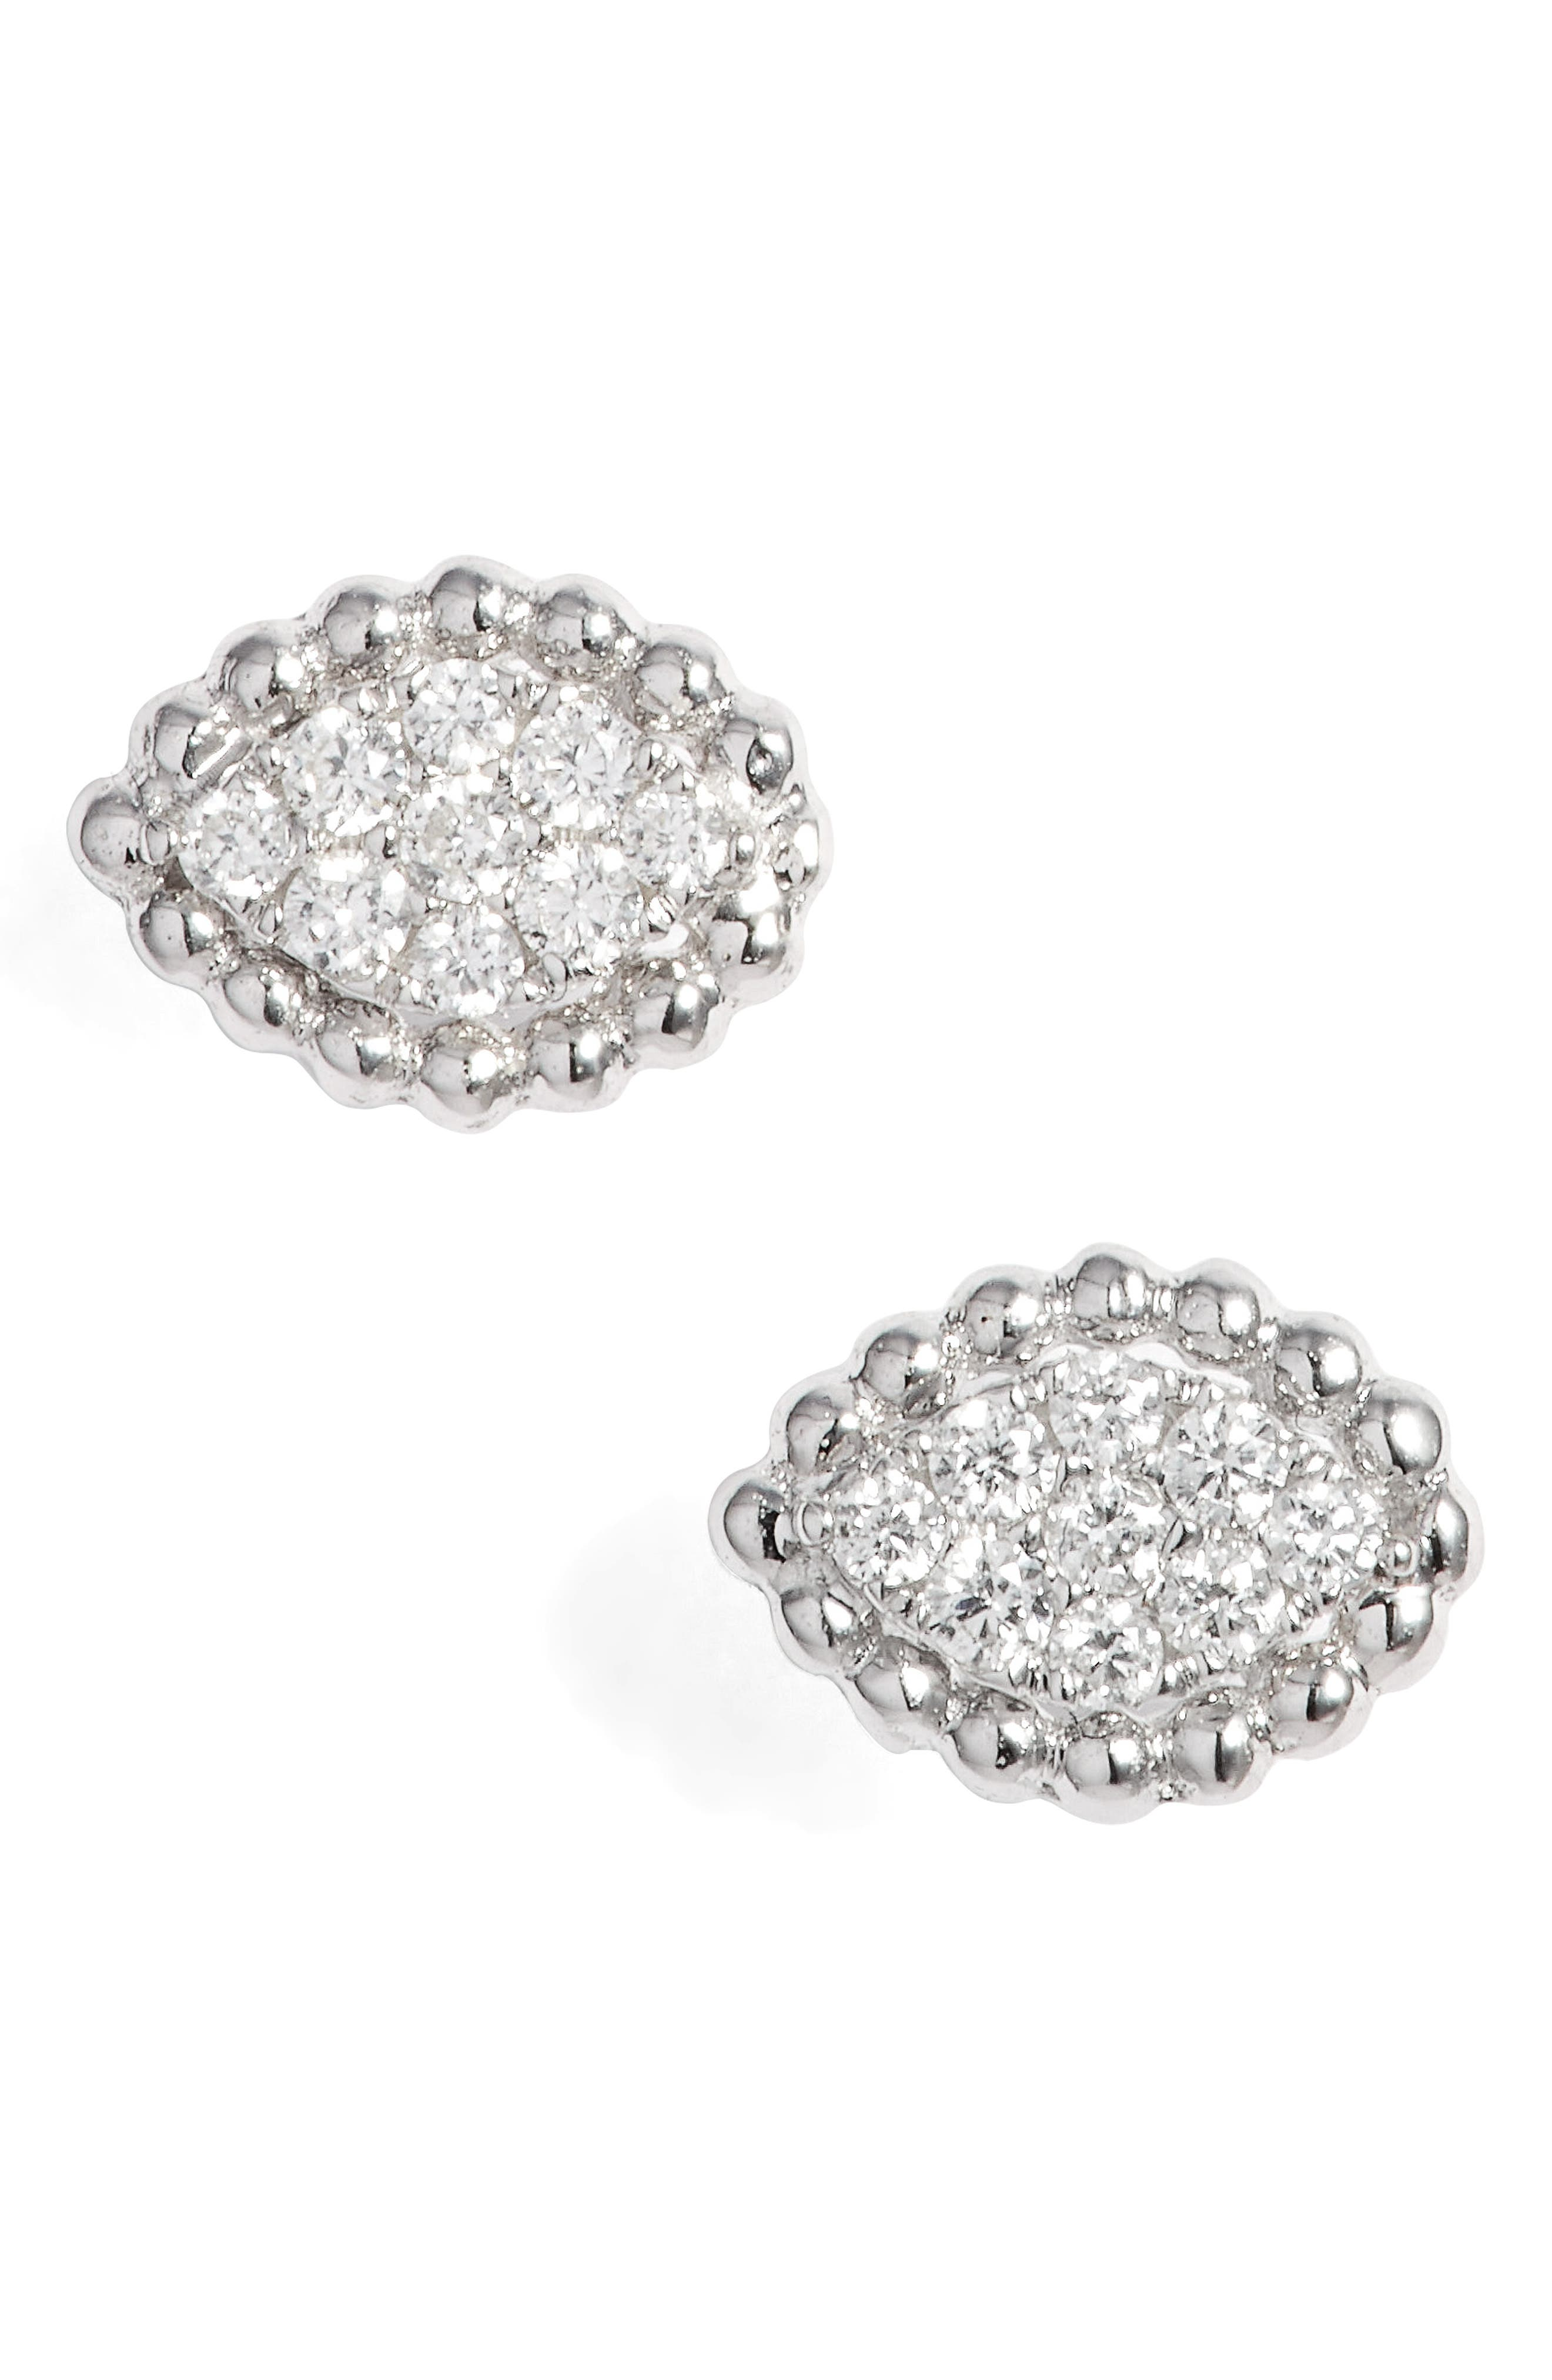 Mika Diamond Marquise Stud Earrings,                         Main,                         color, White Gold